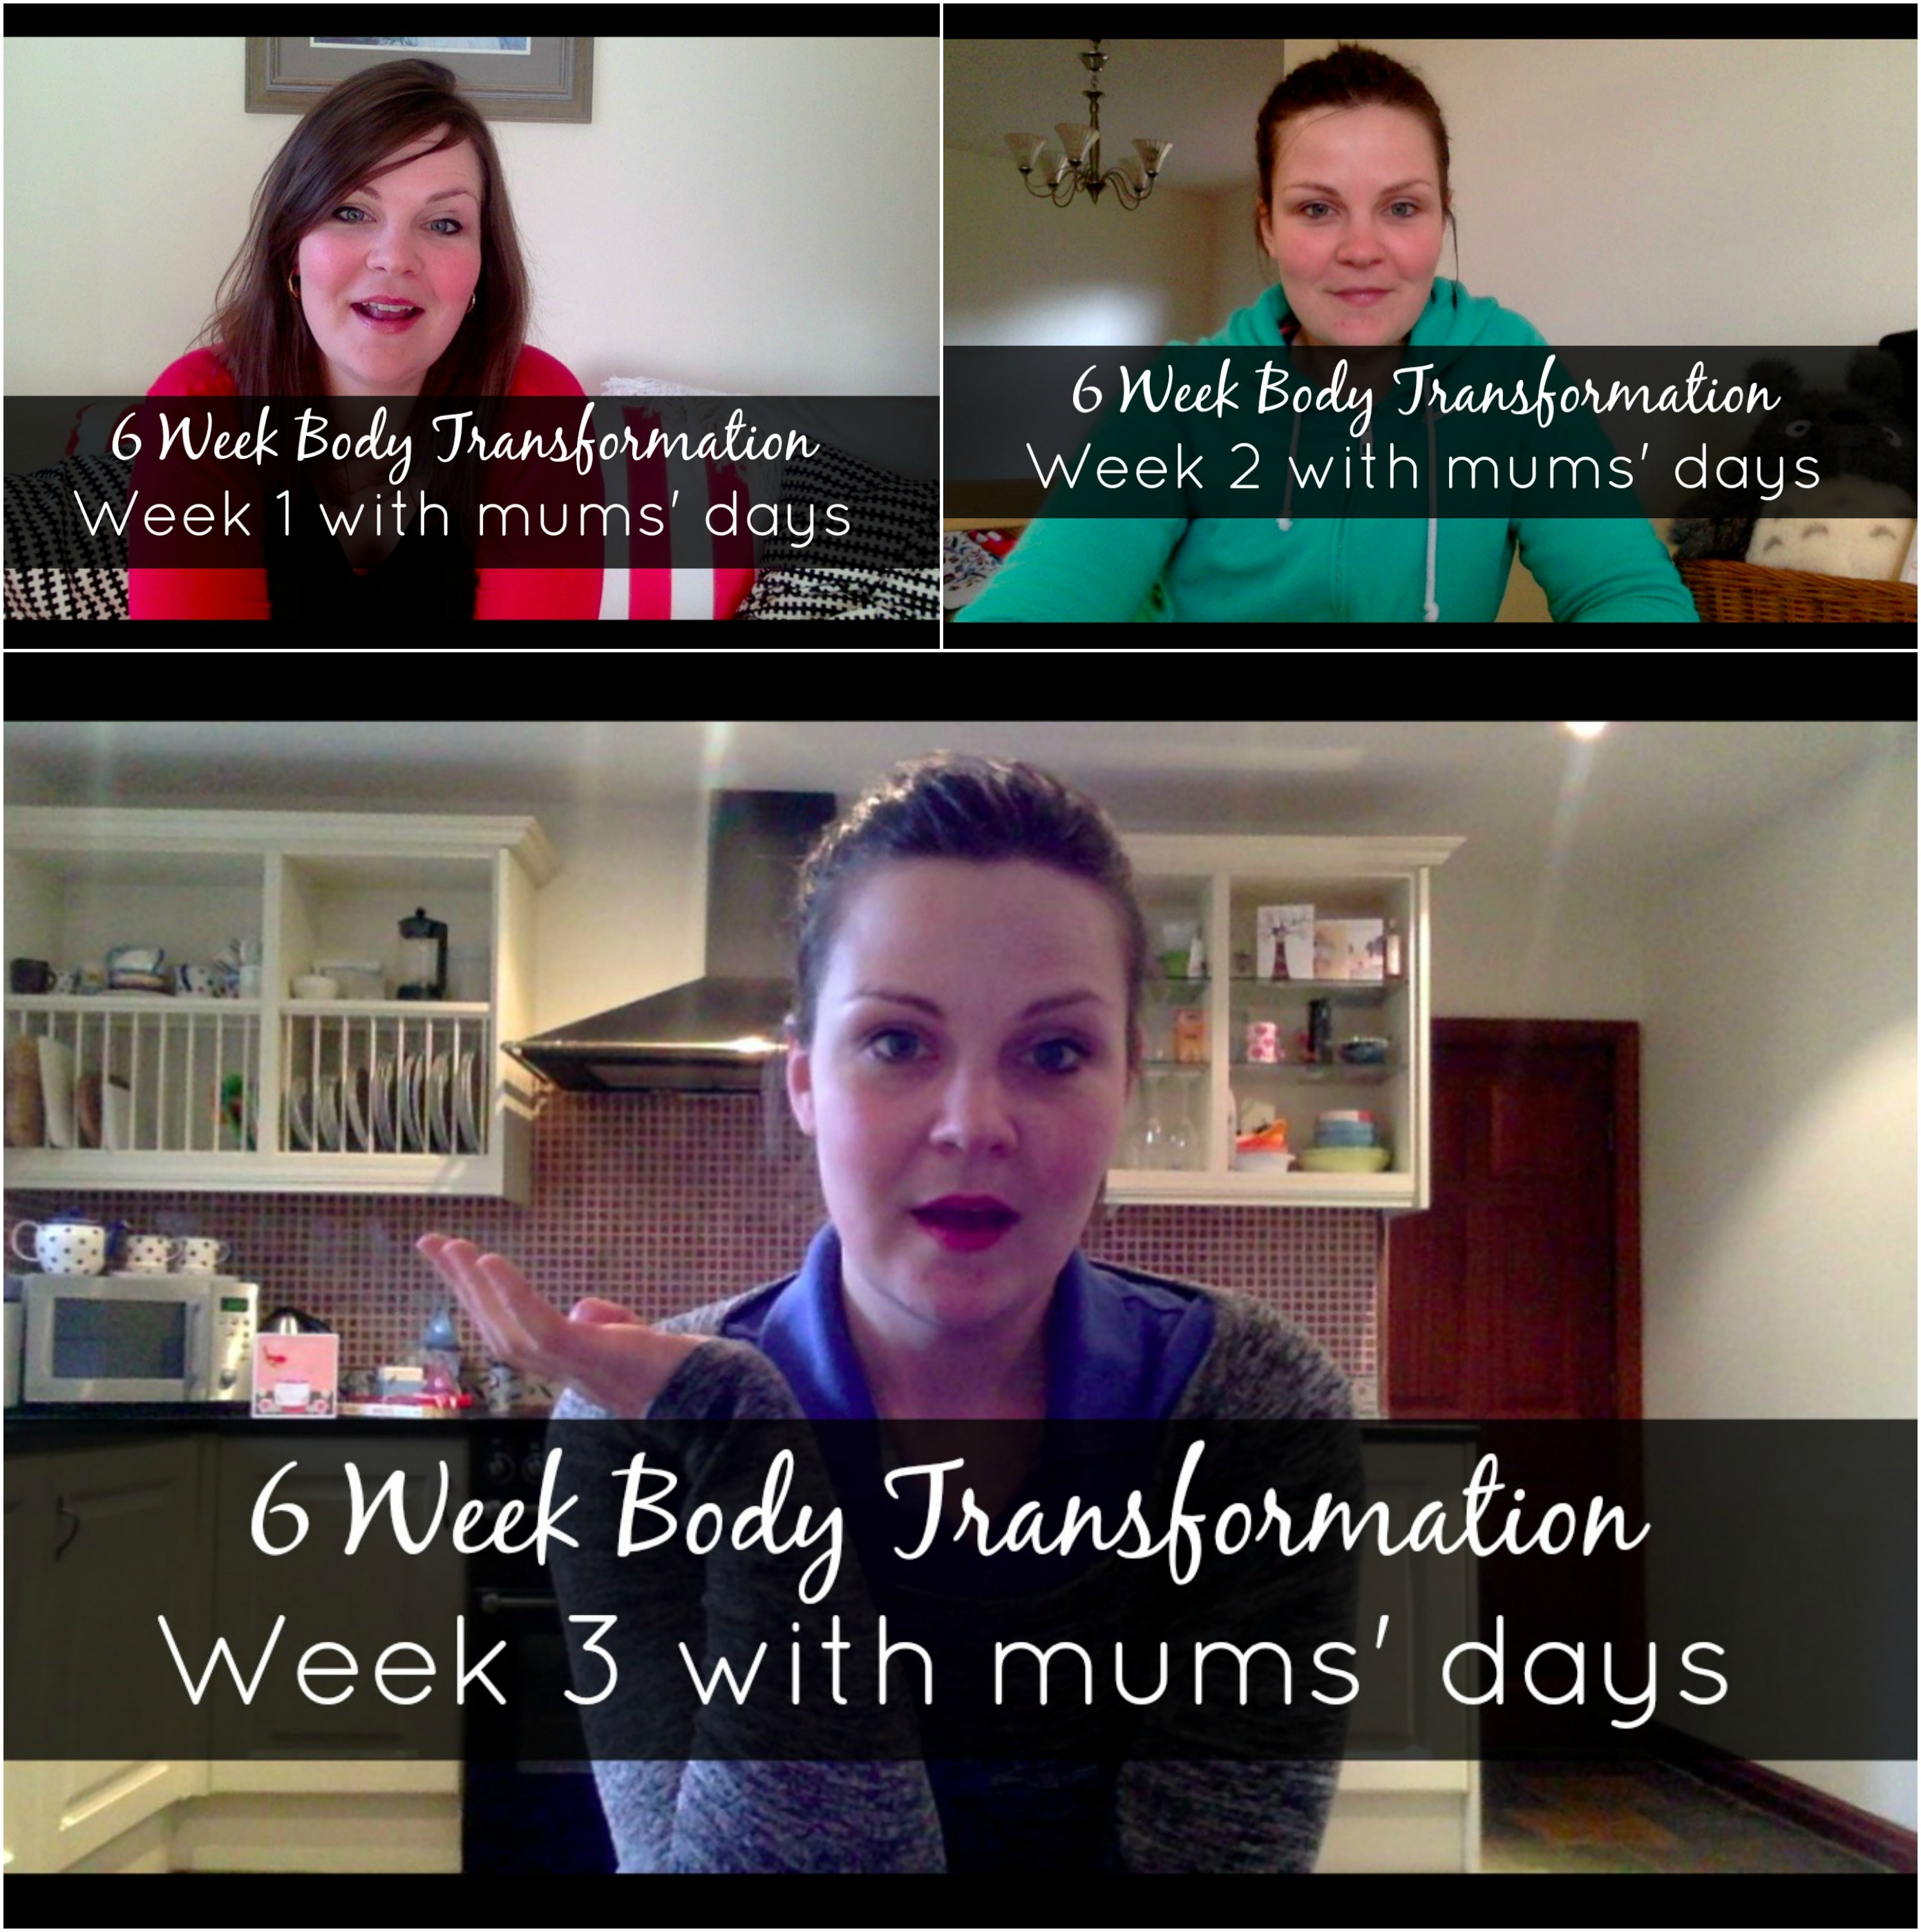 6 week body transformation - click here for weeks 1, 2 and 3 video diary with Mums' Days: http://www.mumsdays.com/6-week-body-transformation/